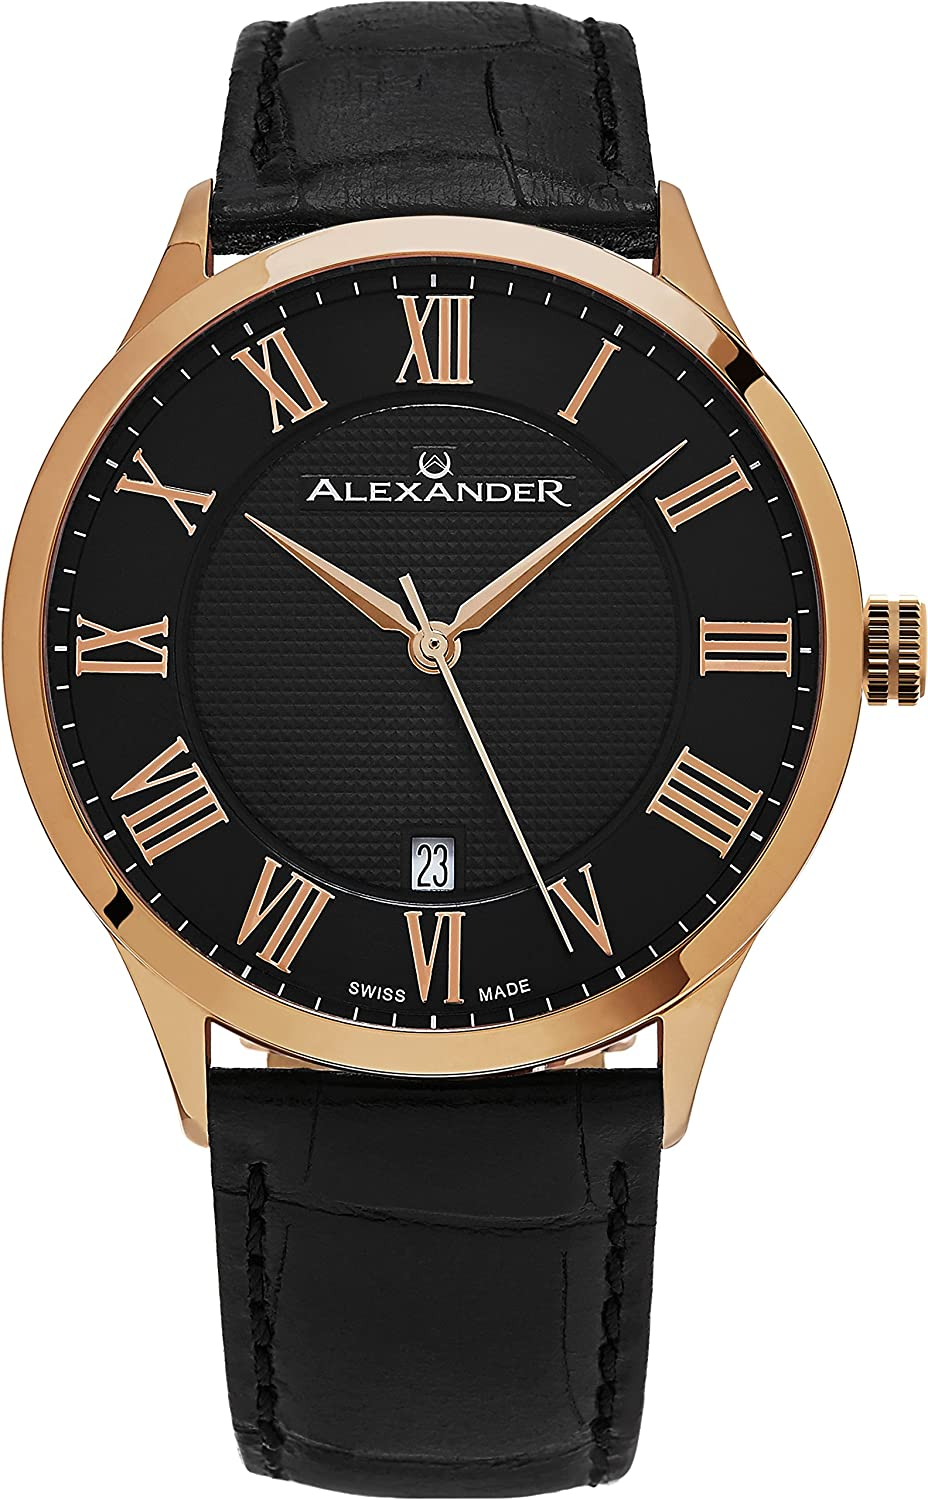 ce191dd7029 Alexander Statesman Triumph Wrist Watch for Men - Stainless Steel Plated  Rose Gold Watch - Black Leather Analog Swiss Watch - Black Dial Date Mens  Designer ...